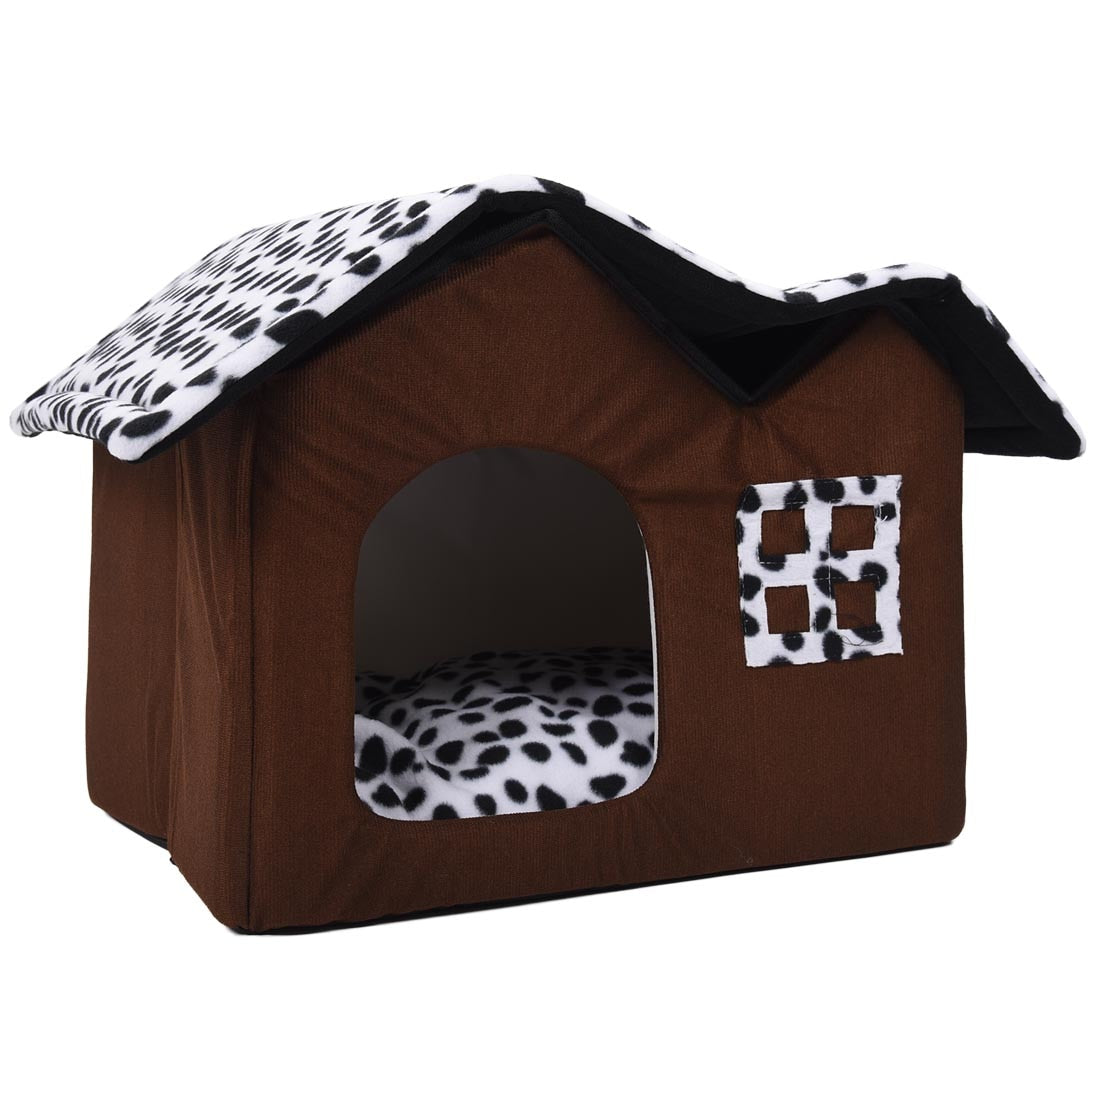 Double Brown Pet House - Pet Gear Solutions